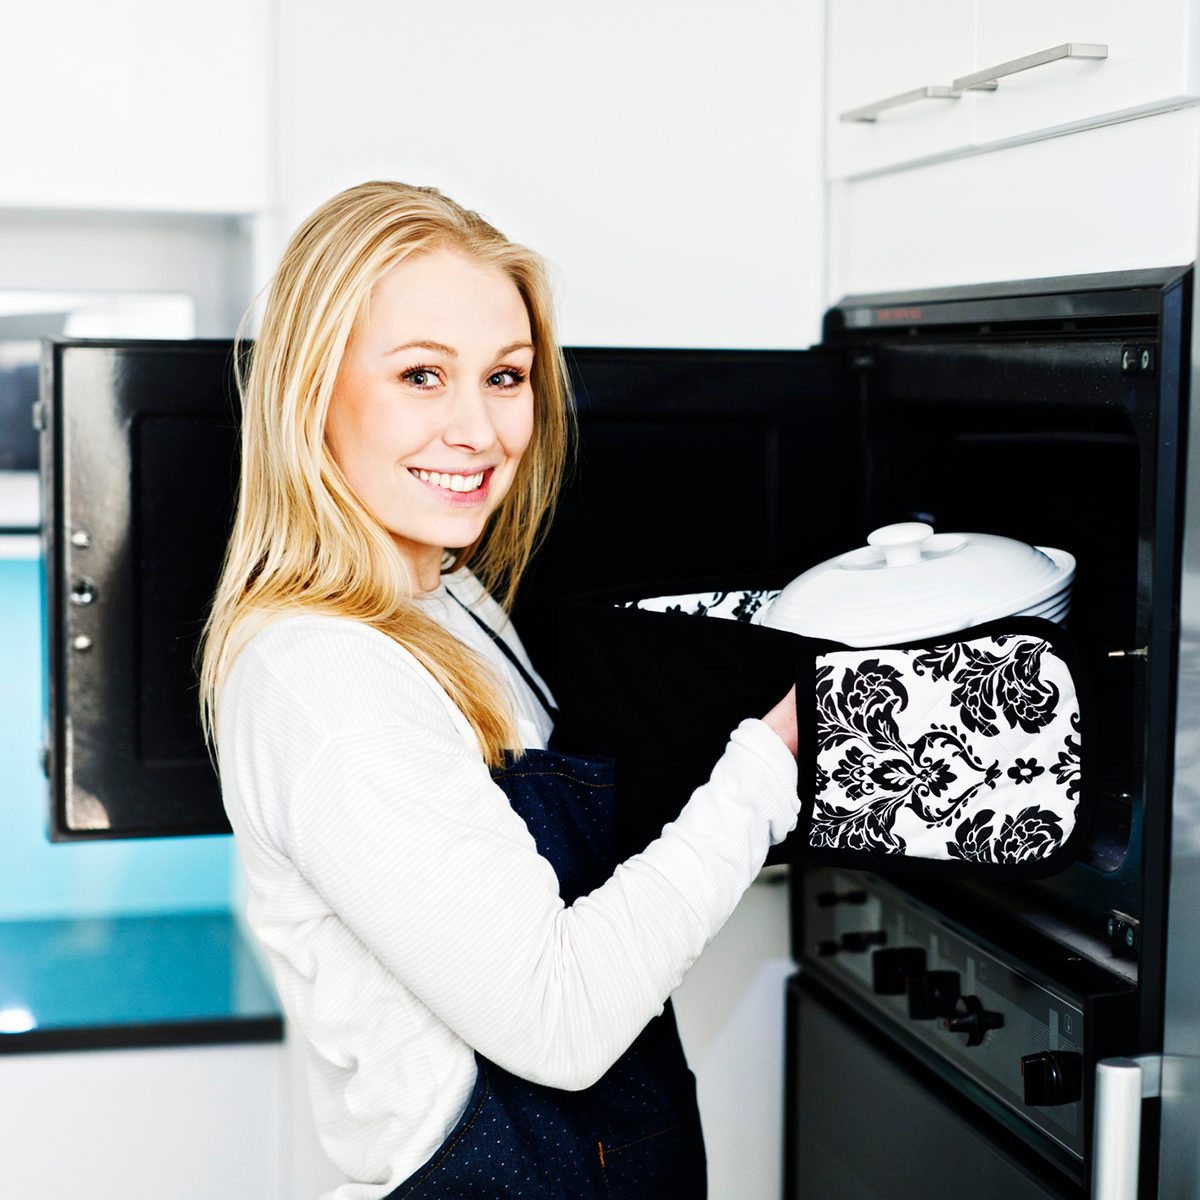 A beautiful young blonde woman looks up, smiling proudly, as she holds a casserole dish next to the oven in her modern, elegant kitchen. Here's to cooking success!